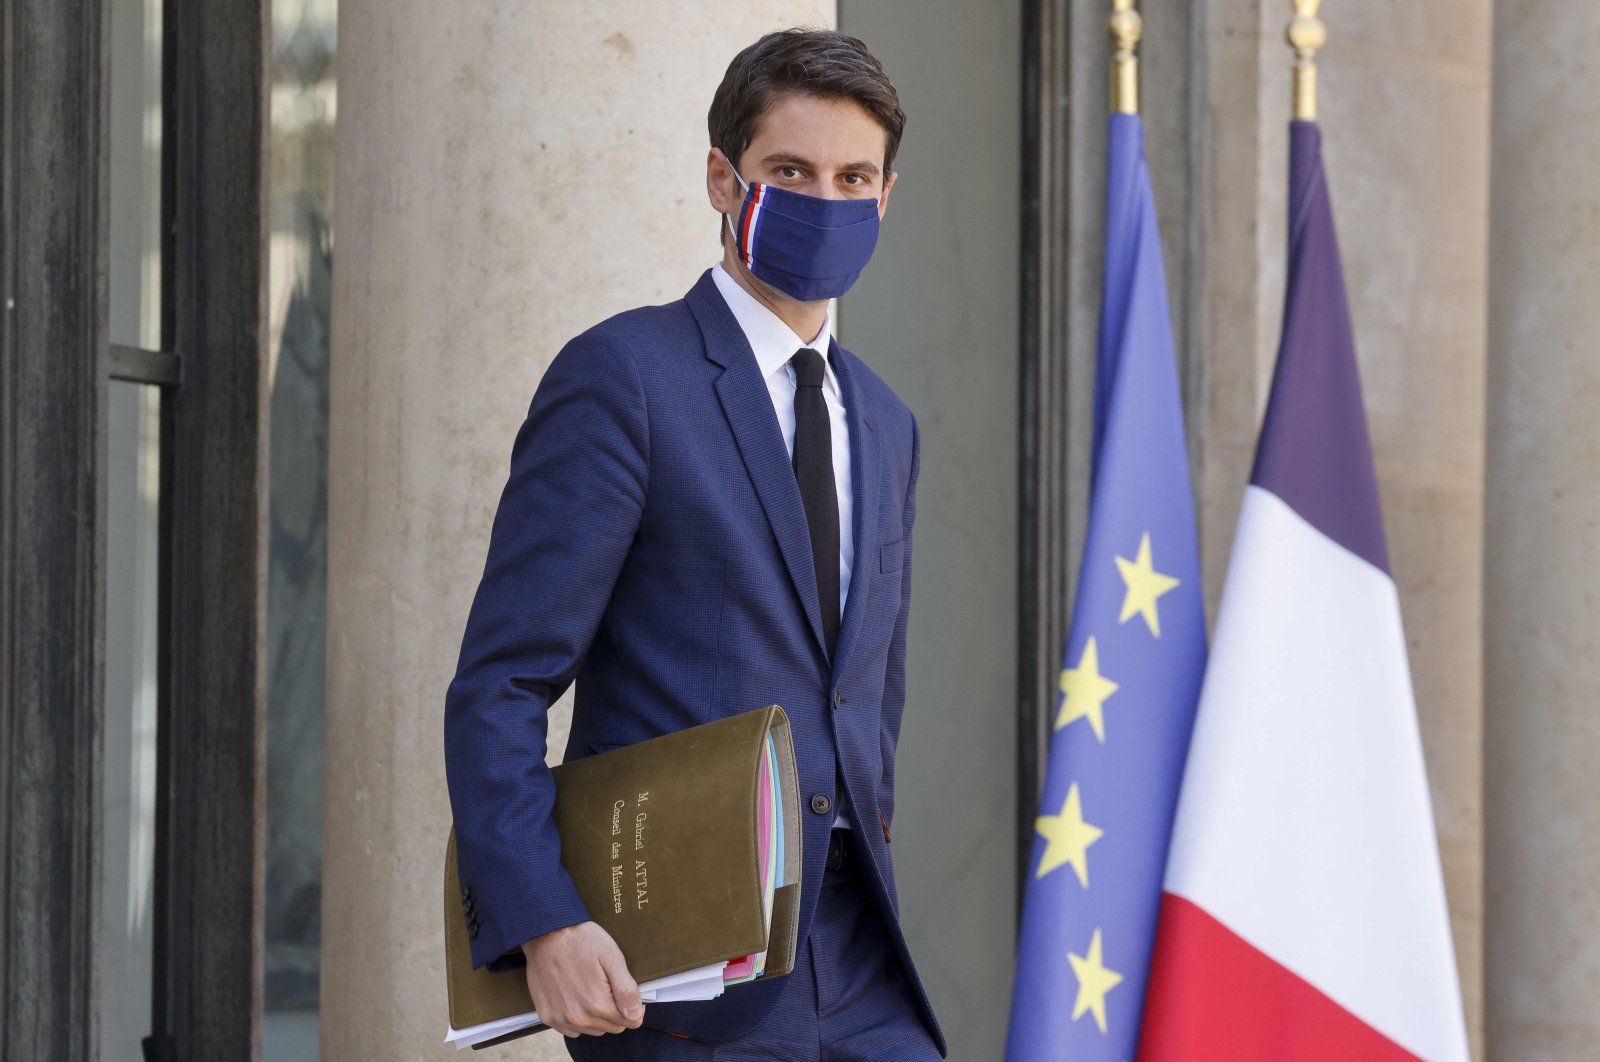 Gabriel Attal, France's secretary of state and government spokesperson, wearing a protective face mask, leaves after a weekly Cabinet meeting at the Elysee Presidential Palace in Paris, France, March 31, 2021. (Photo by Ludovic MARIN via AFP)